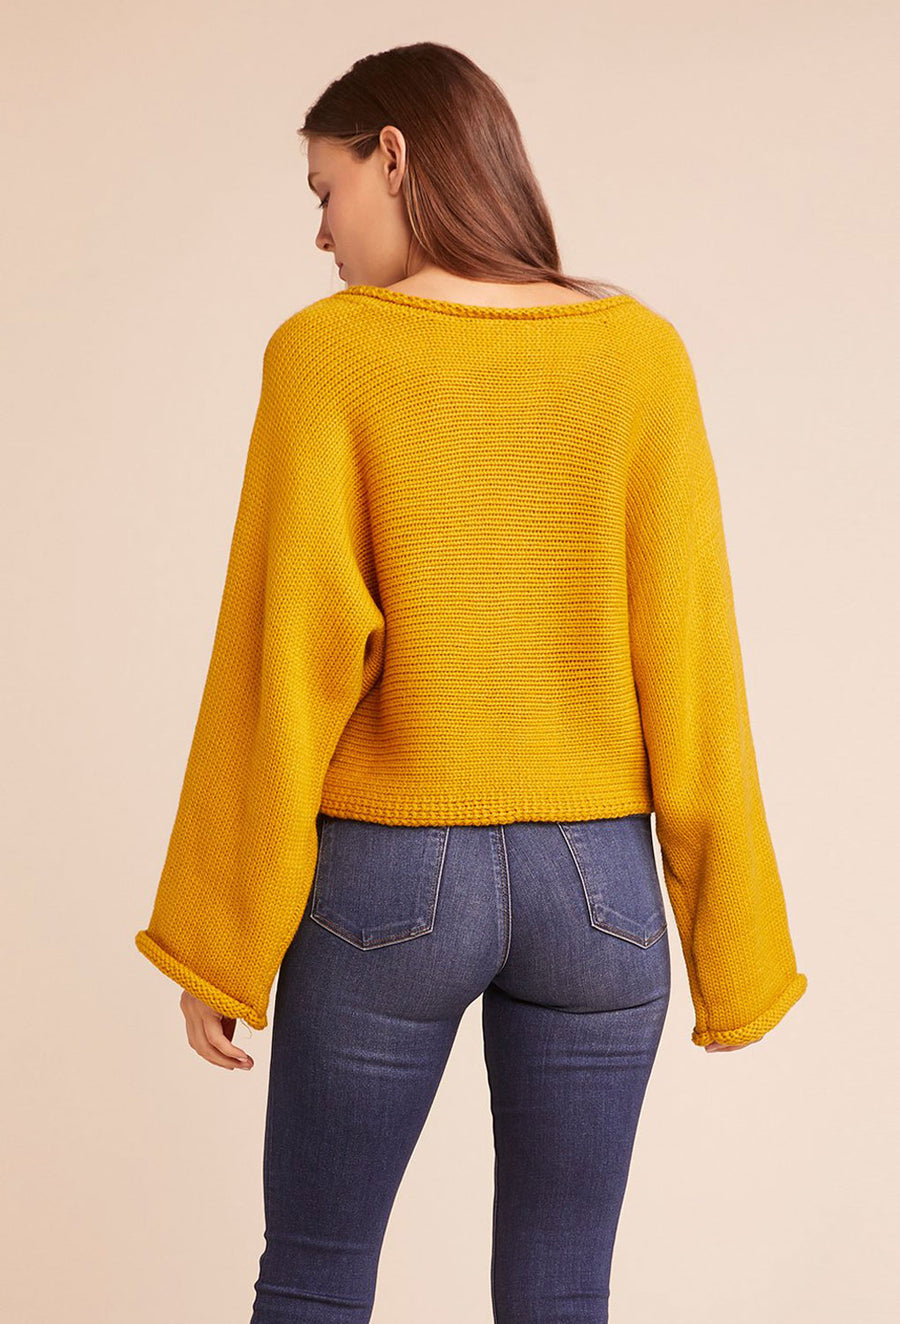 Talk Dropped Sweater - Marigold